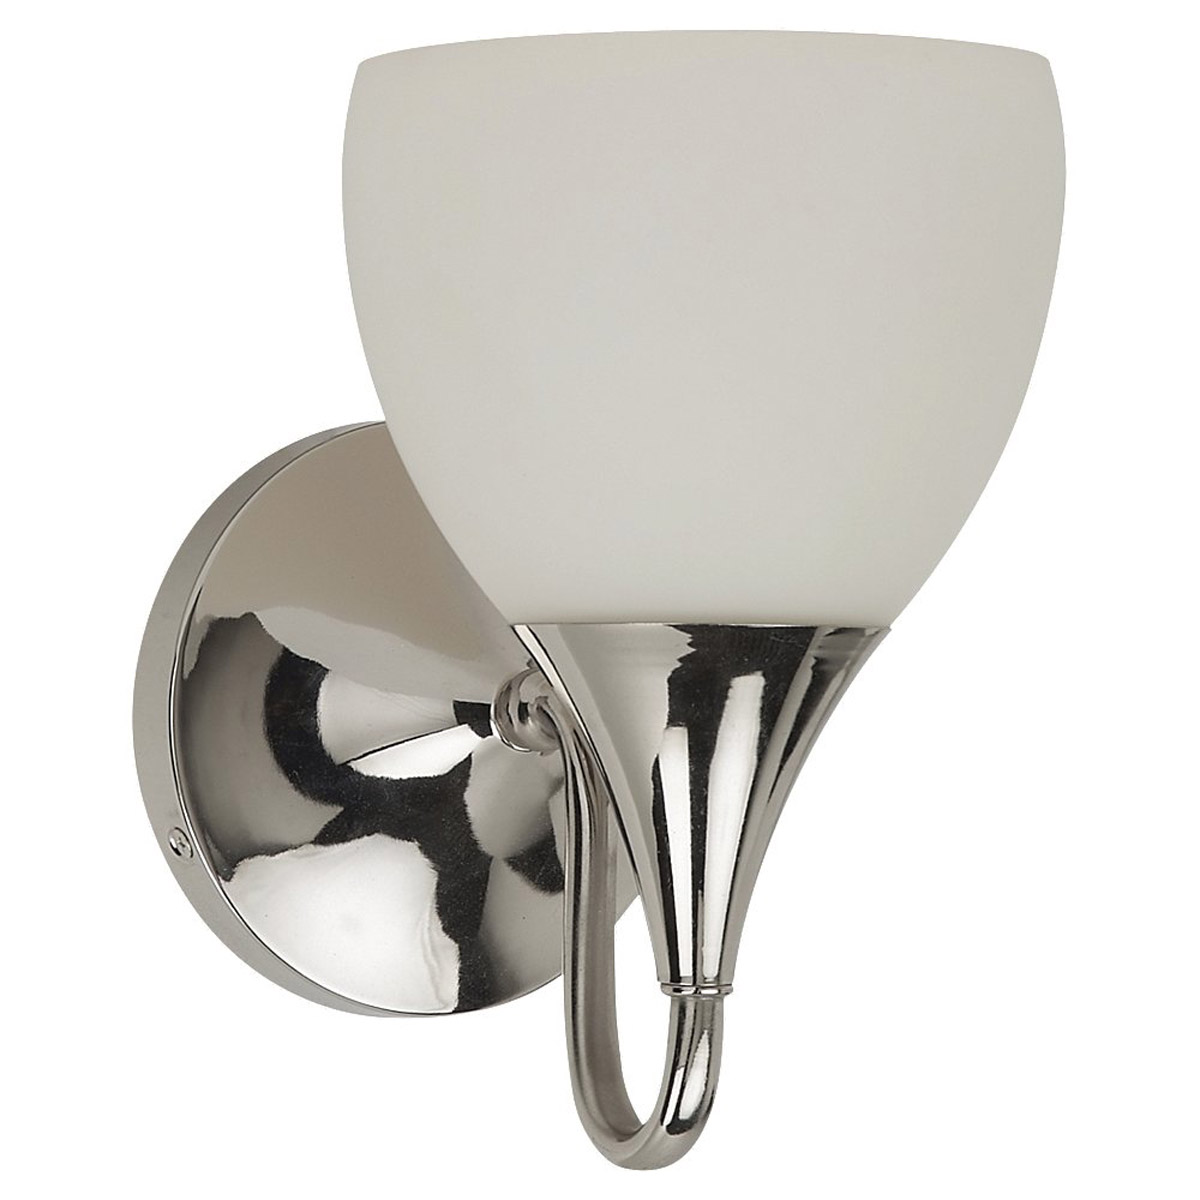 Sea Gull Lighting Solana 1 Light Bath Vanity in Polished Nickel 44971-841